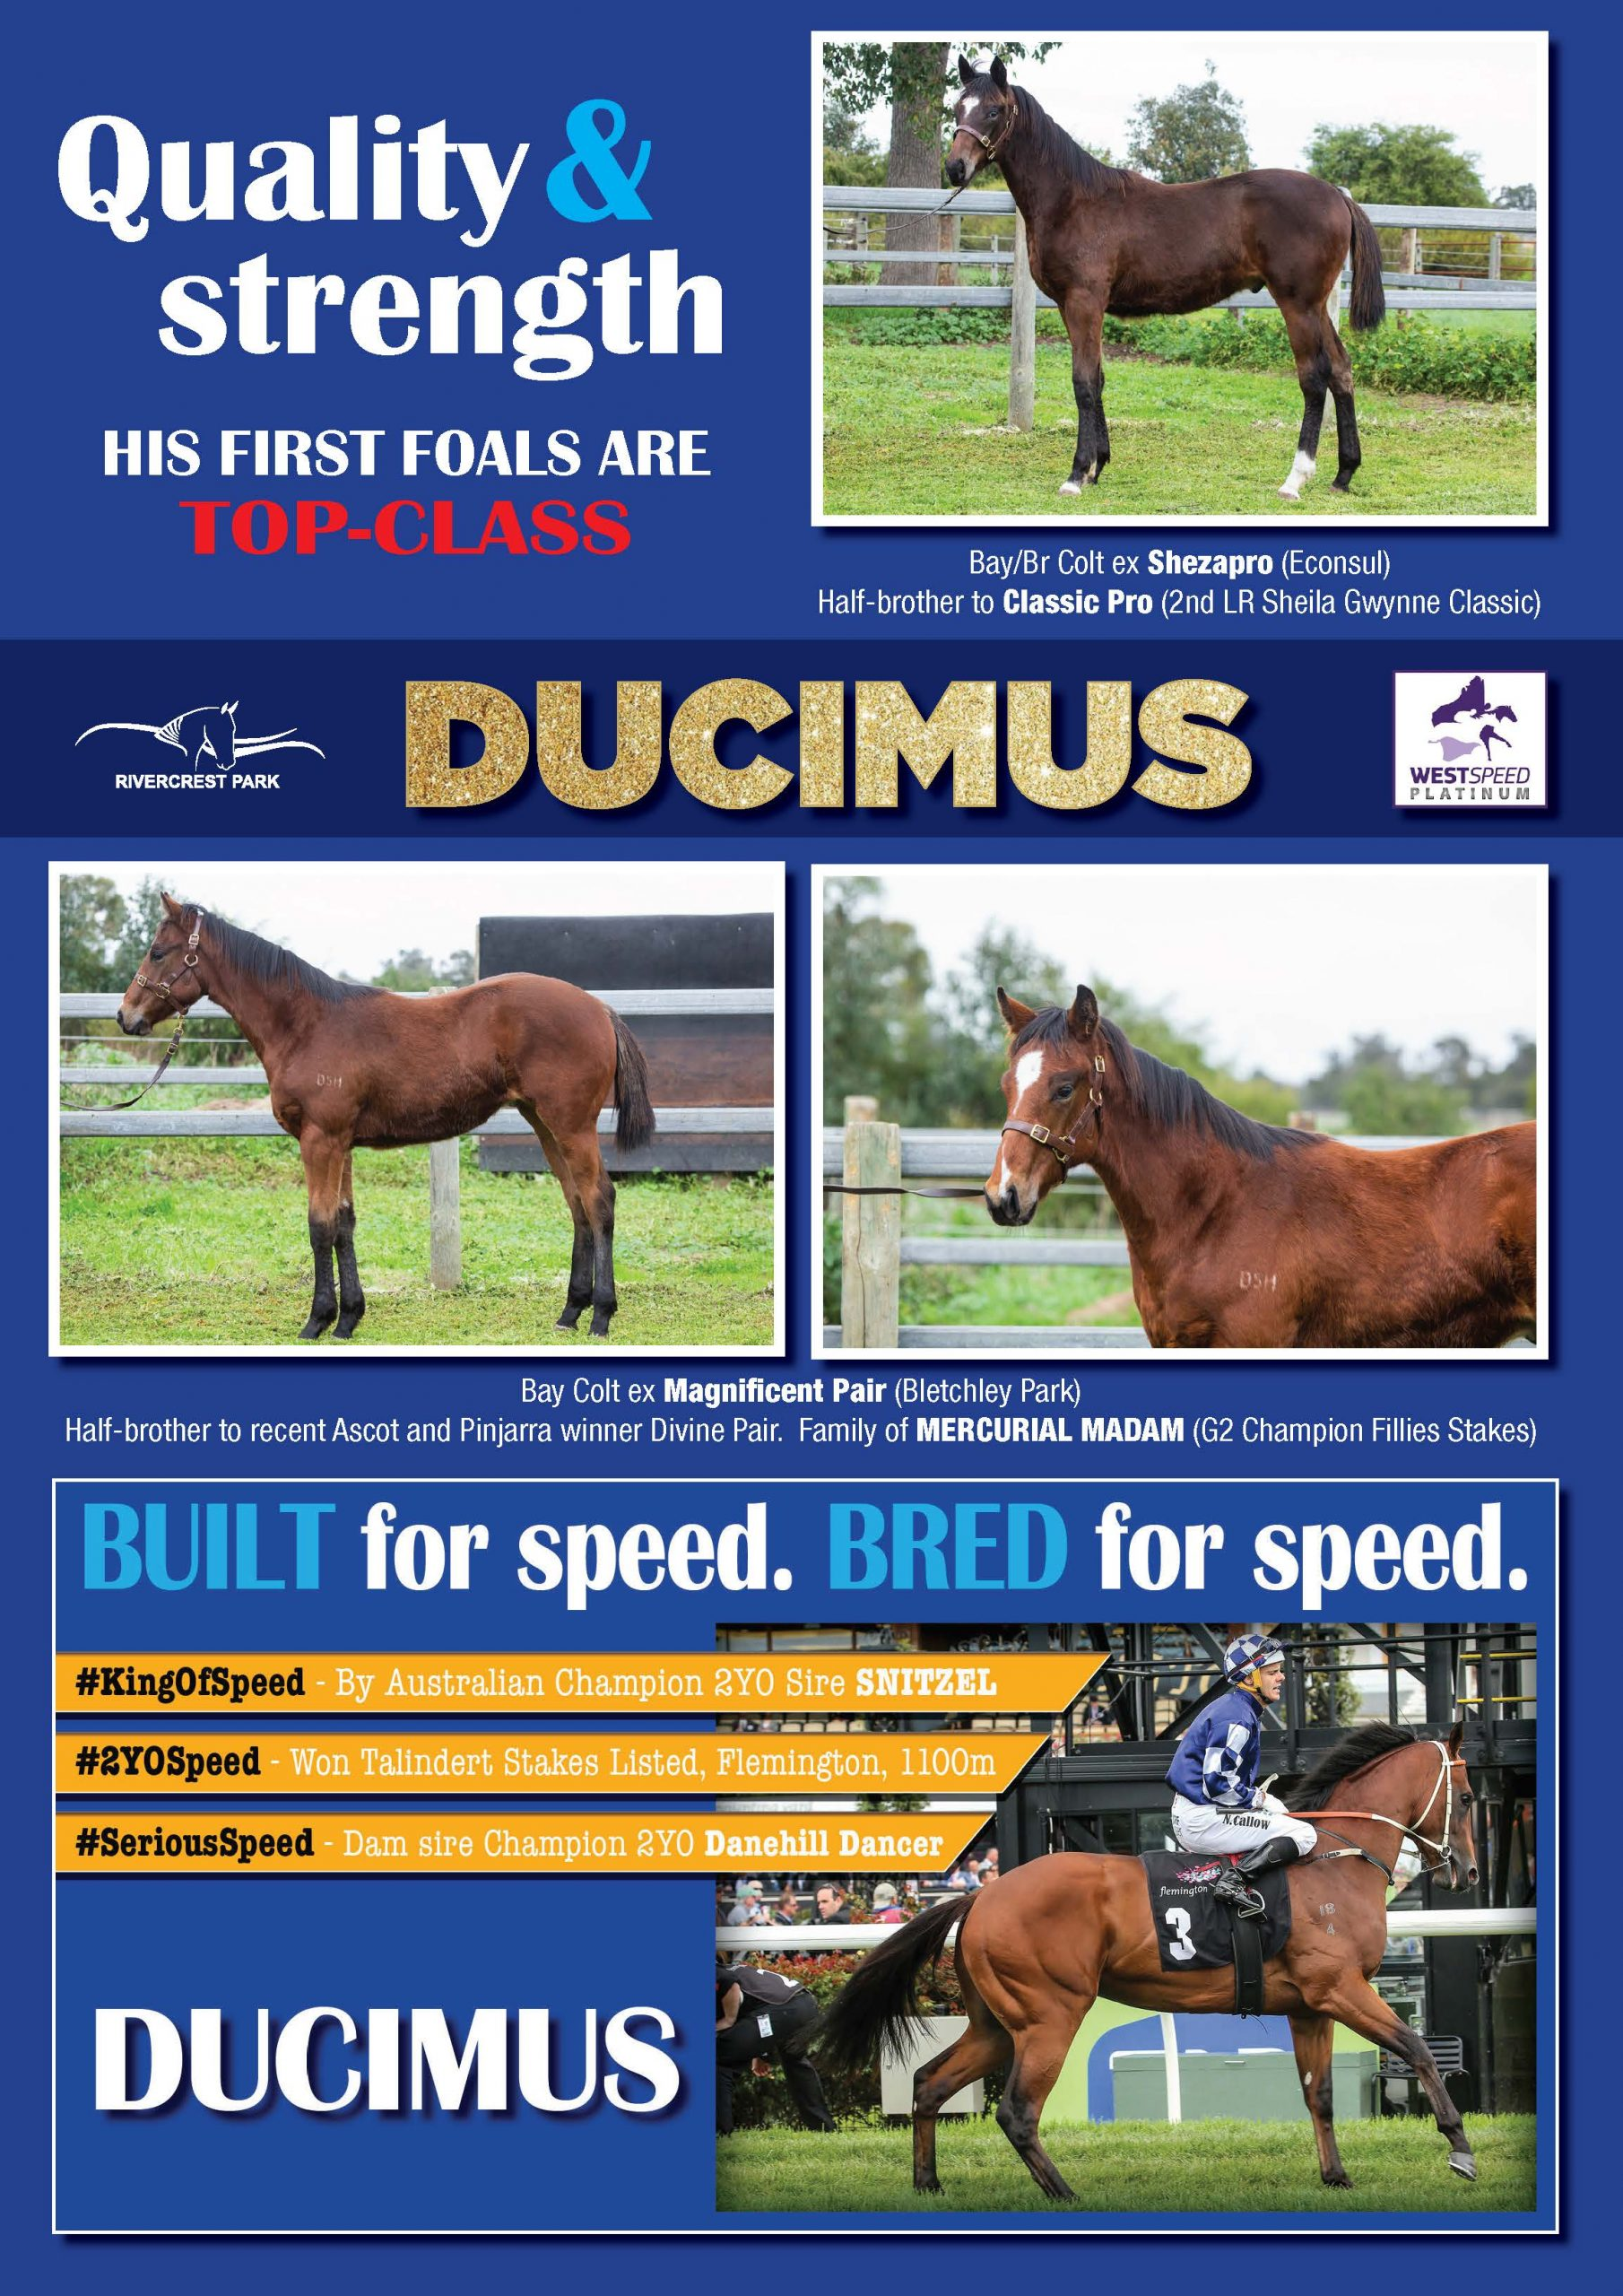 Ducimus brochure page 2